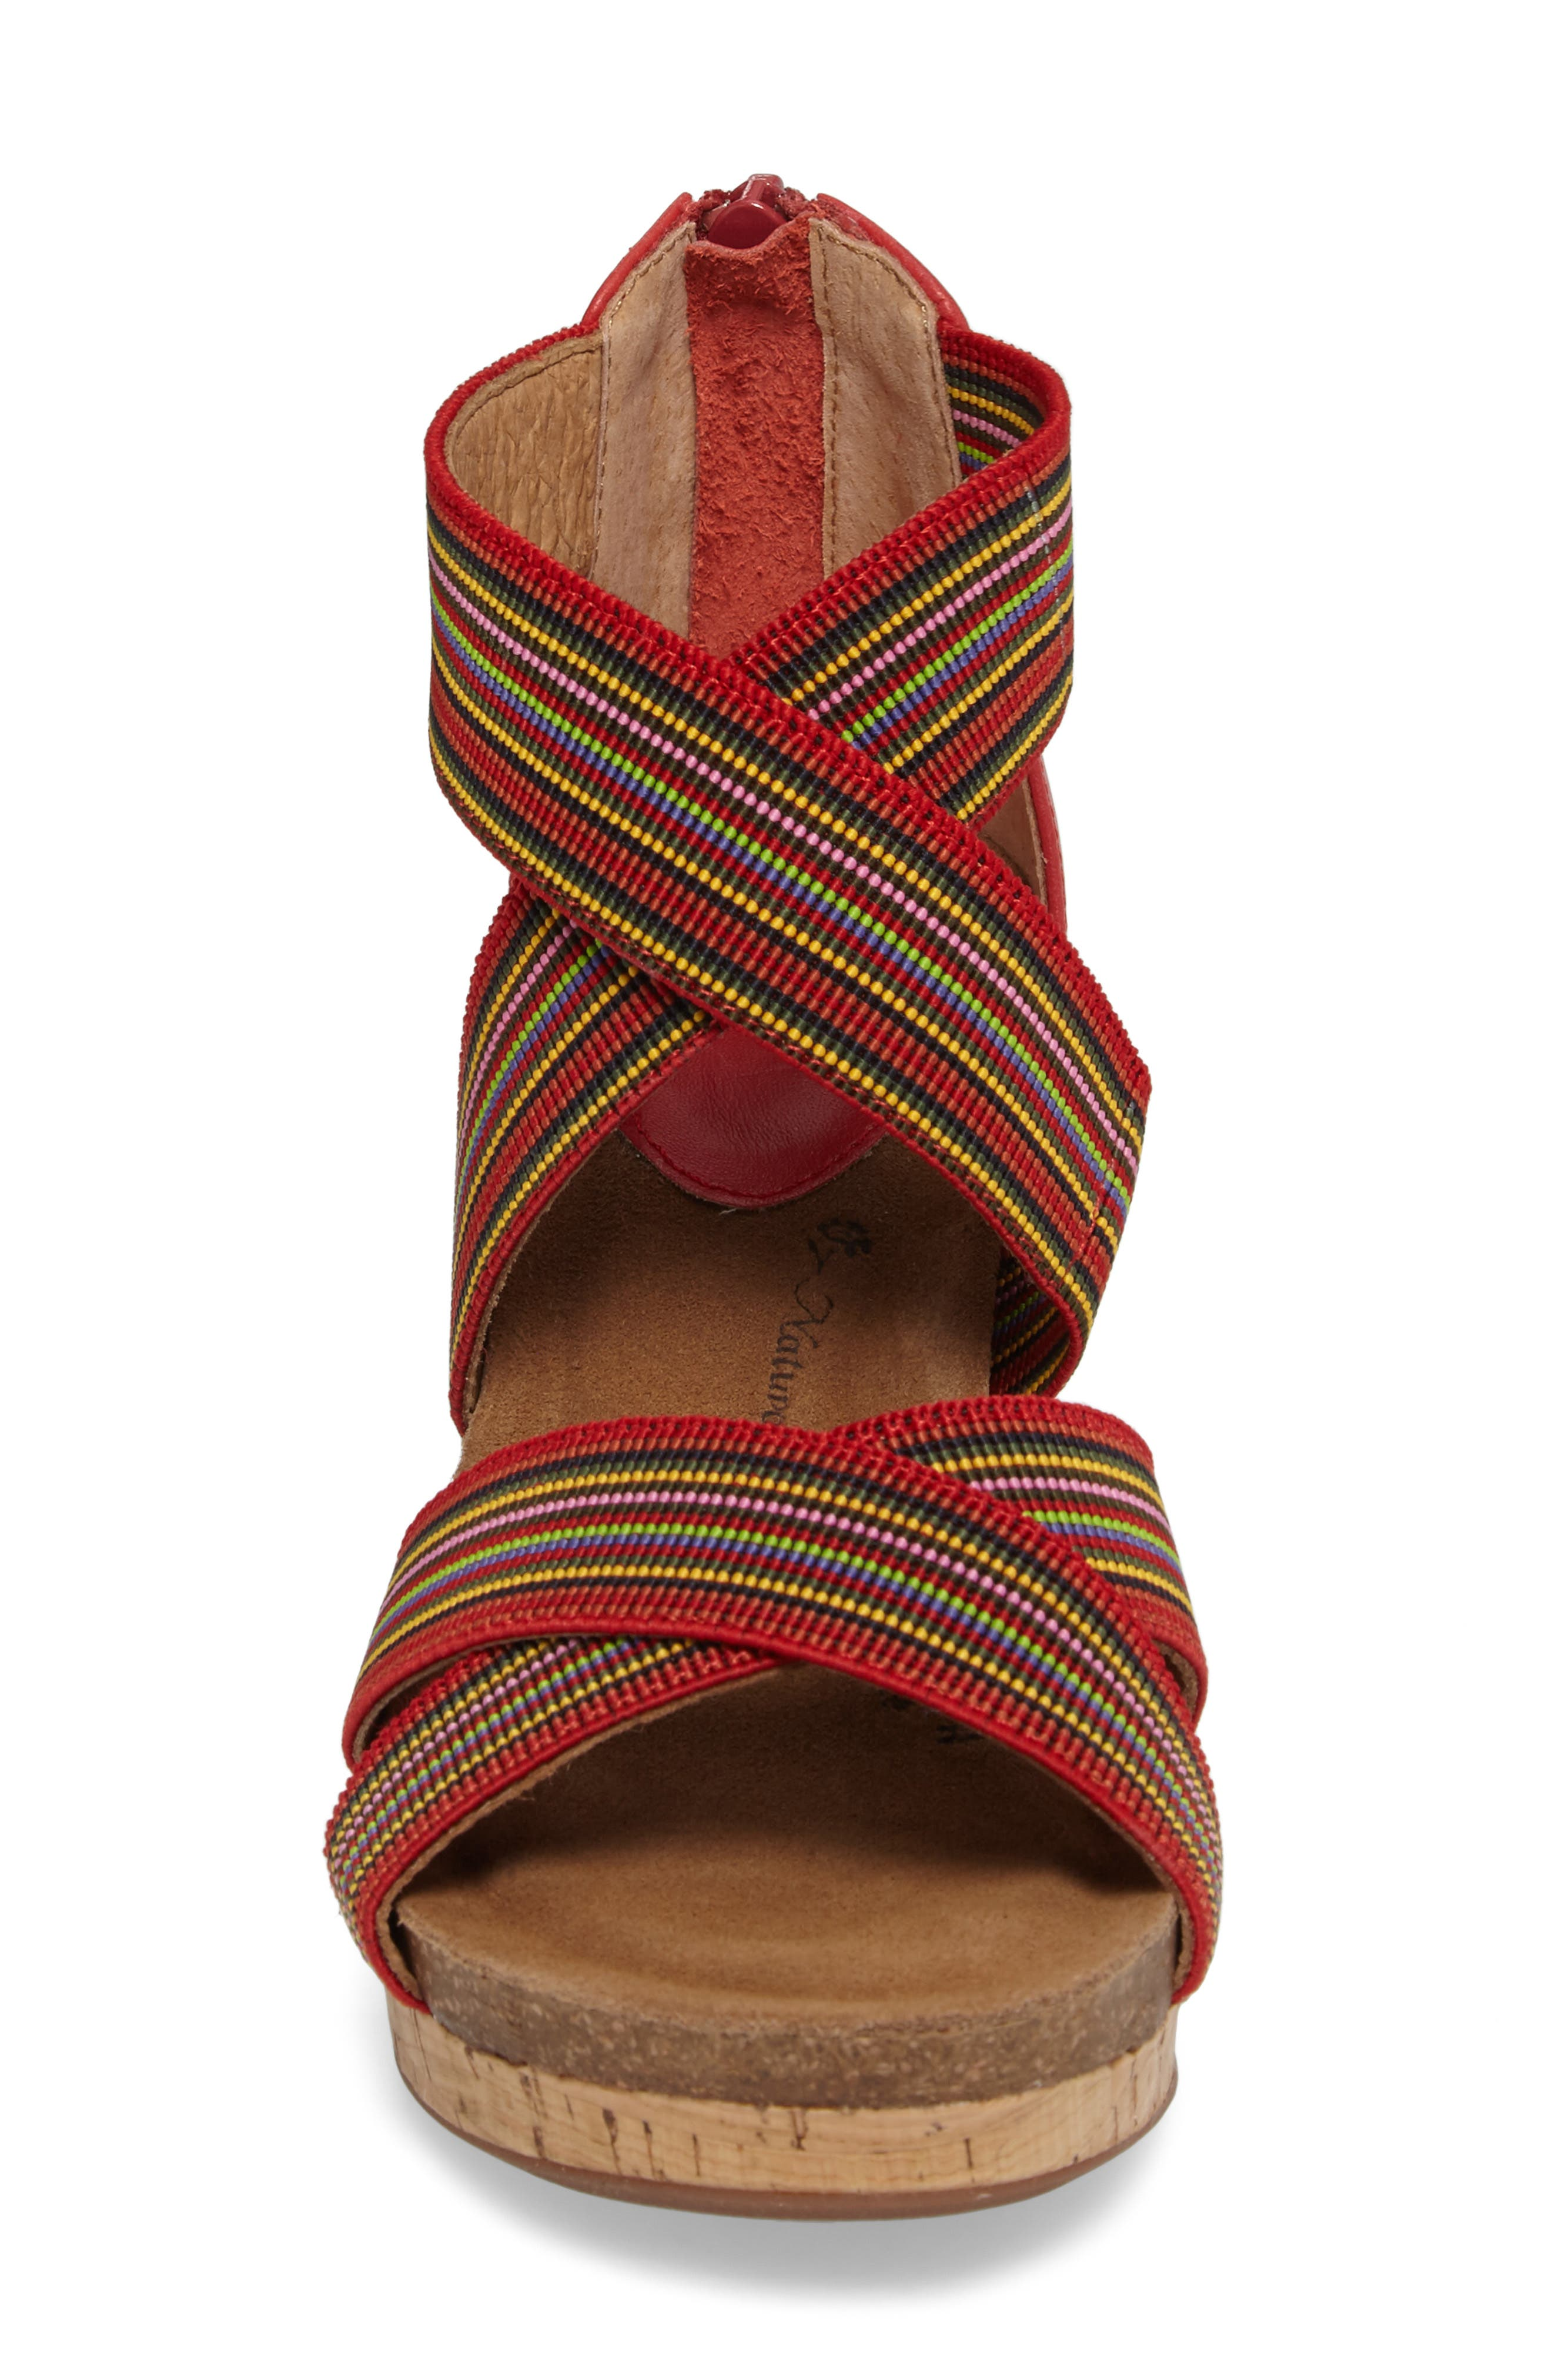 Cary Cross Strap Wedge Sandal,                             Alternate thumbnail 12, color,